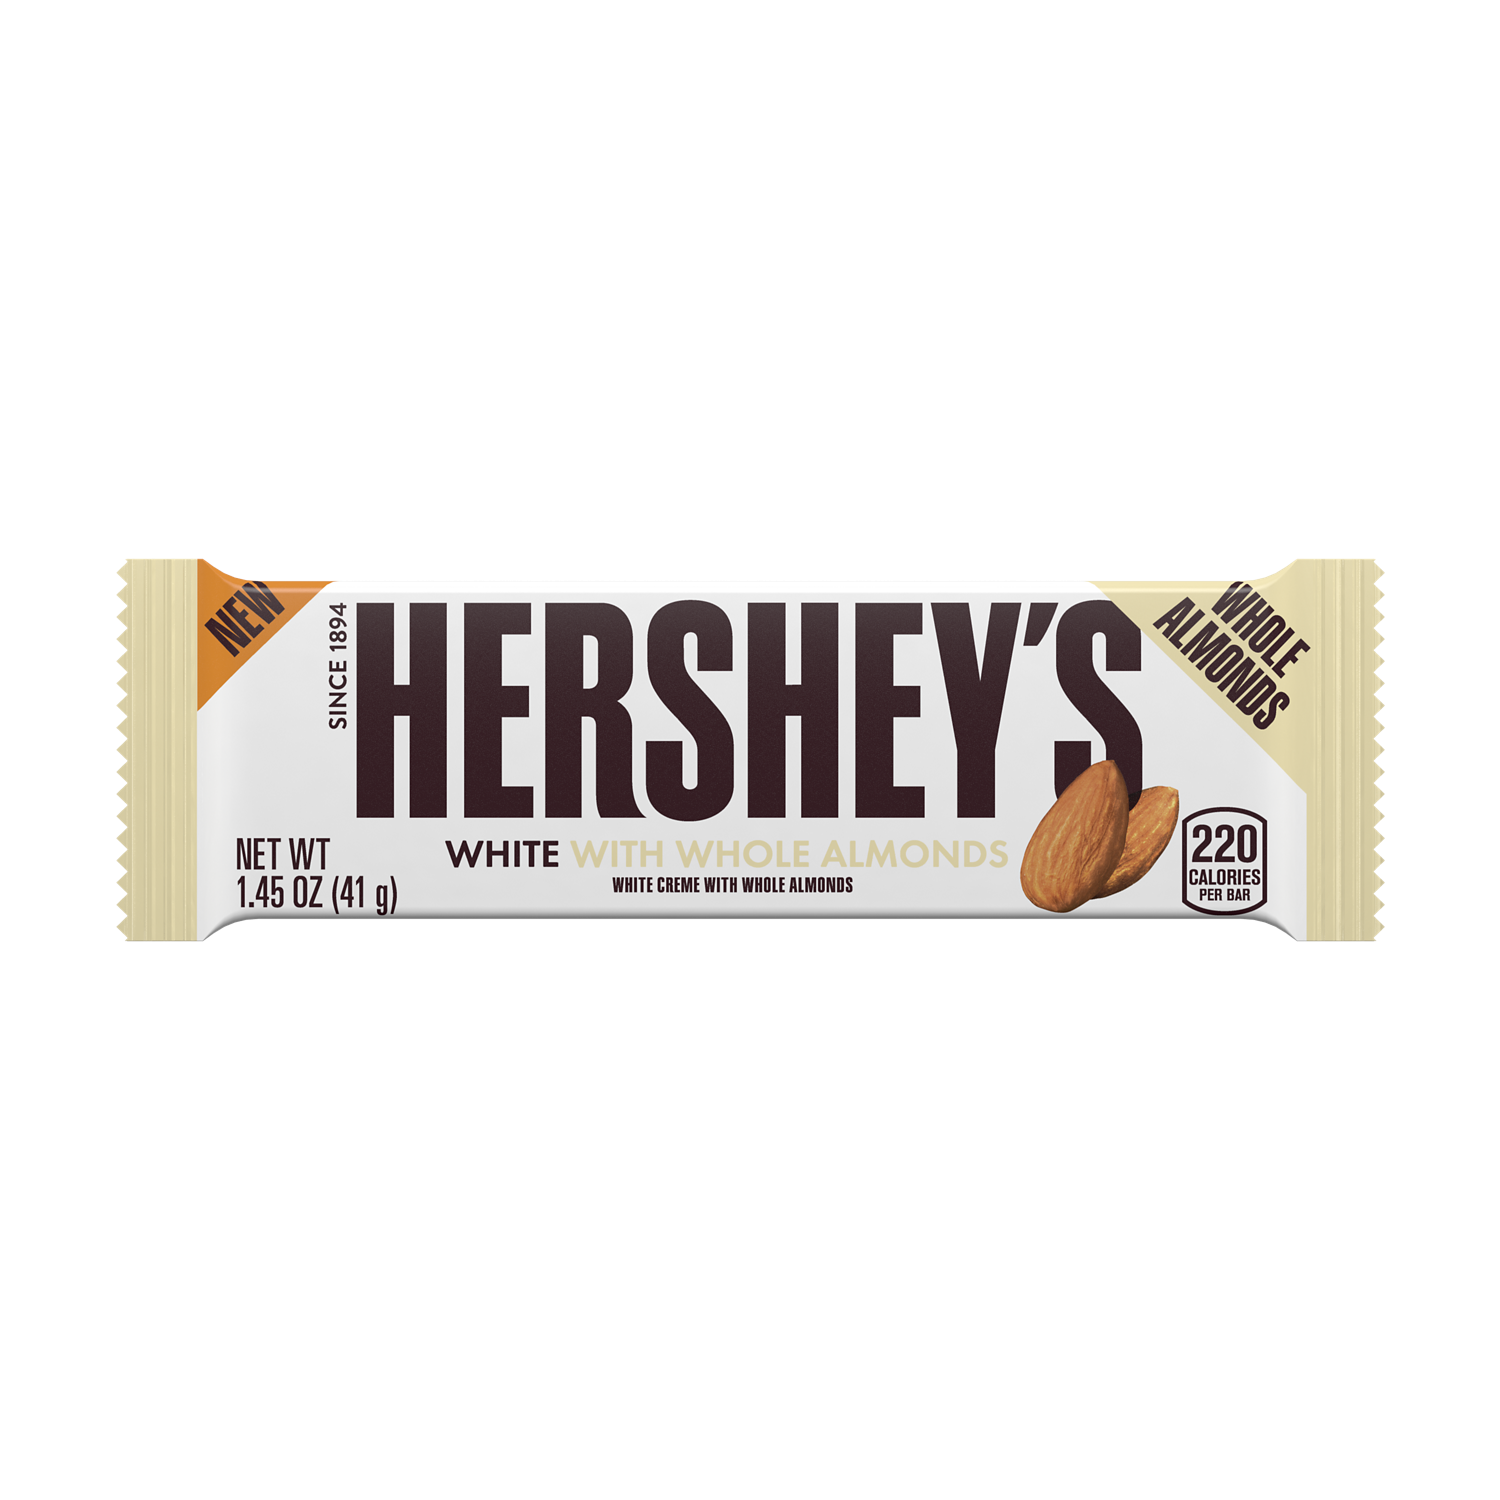 HERSHEY'S White Creme with Almonds Candy Bar, 1.45 oz - Front of Package